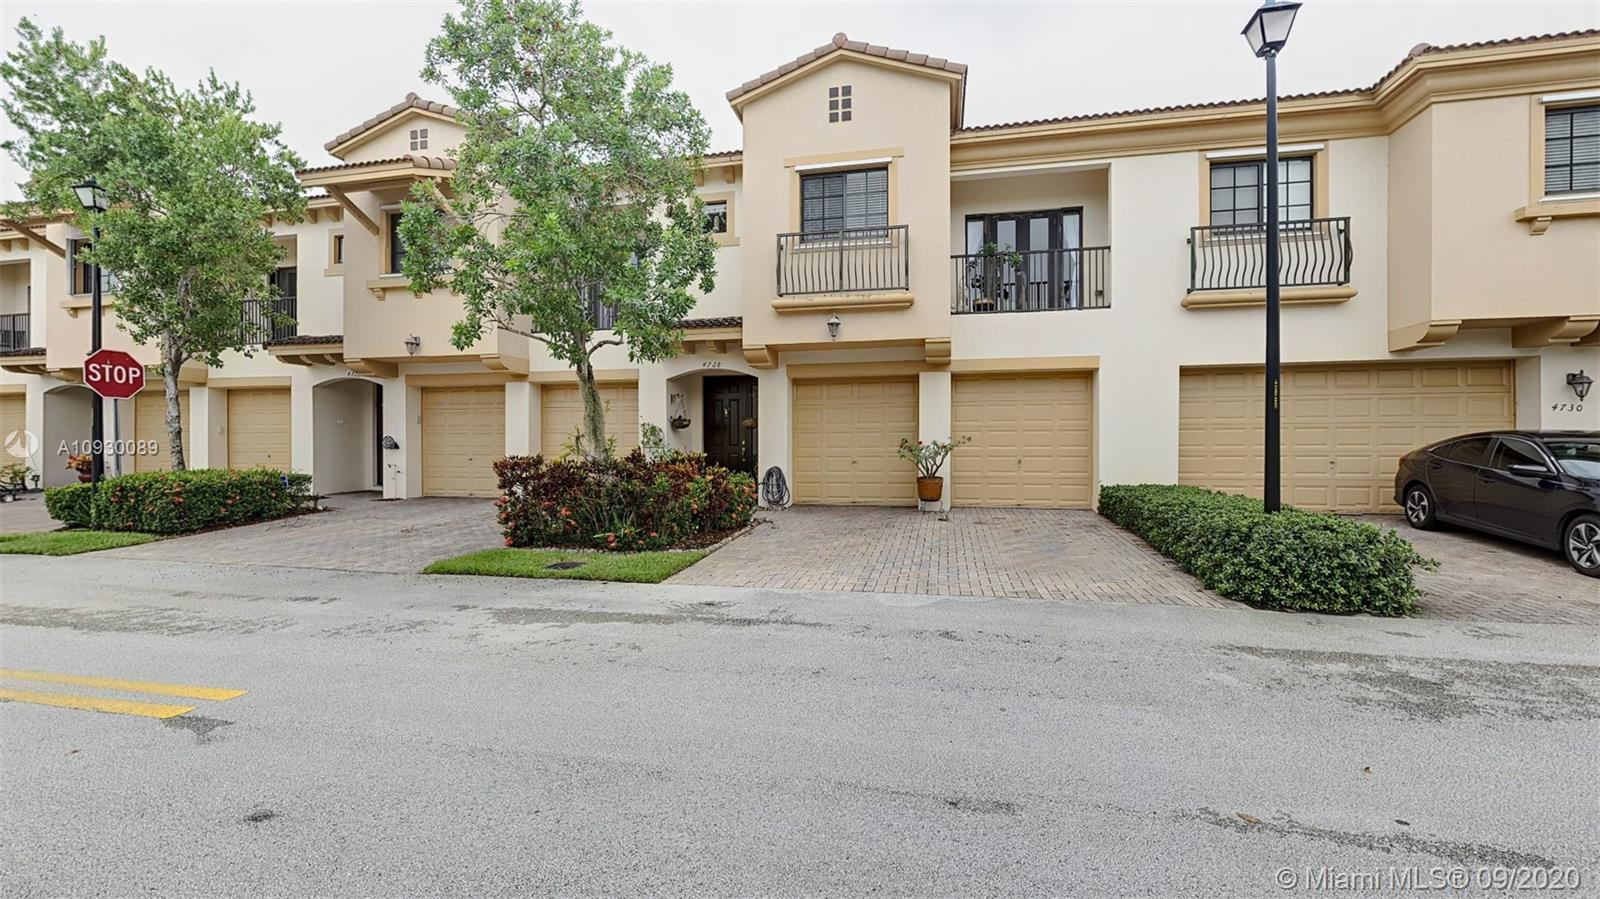 Beautiful Bright & Spacious 3BR/2.5BA/2CG Townhome in Grand Cypress, Coconut Creek! Excellent location. Home Features: Updated Kitchen with S/S Appliances, Granite Counters, Wood Cabinets, plenty of counter space with a large breakfast bar. Tile throughout the first floor. Máster Suite has his and her walk-in closets, dual vanities, shower, and separate roman tub. 3 large bedrooms, guest bath & Laundry on 2nd Fl. Hurricane Shutters. surrounded by  green areas and guest parking. Low HOA Fees! Comm Pool & Tot Lot, great schools, near major highways and shopping. Perfect for families, pet lovers and investors. The property can be rented right away.